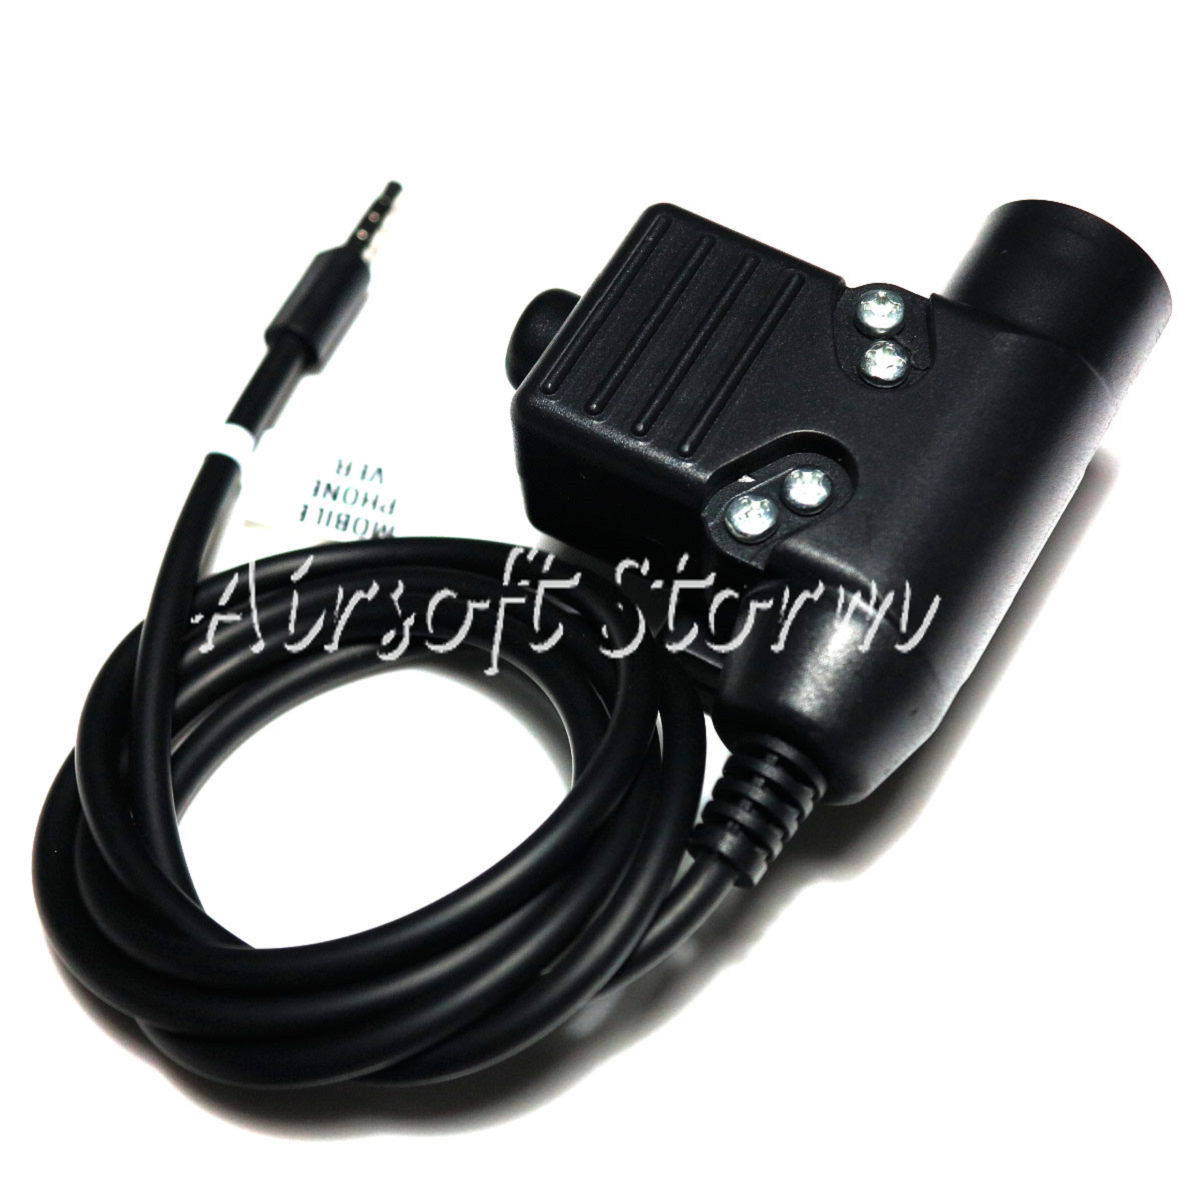 Airsoft SWAT Communications Gear Element U94 Headset PTT for Mobile Phone 3.5mm Version